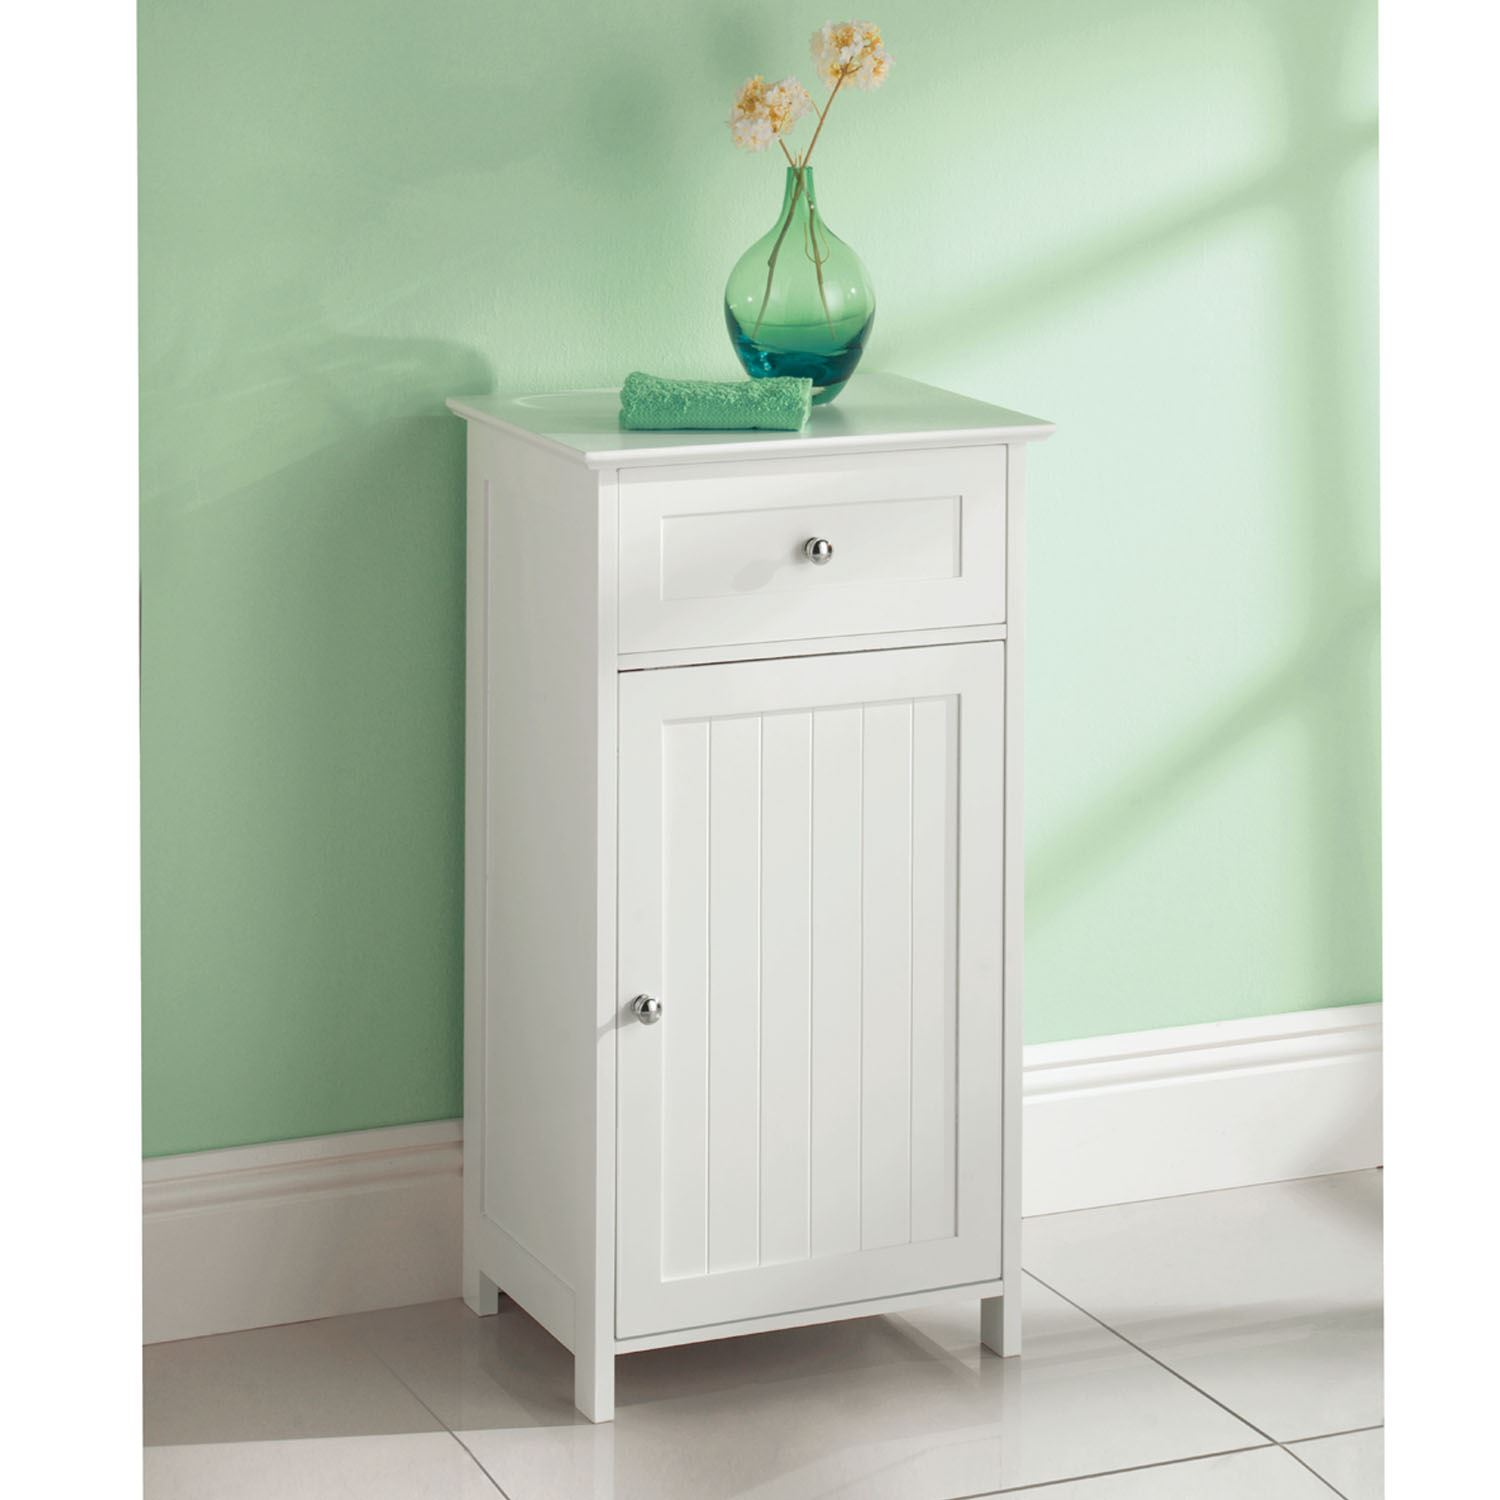 White Wooden Bathroom Cabinet Cupboard 1 Door 1 Drawer Freestanding ...